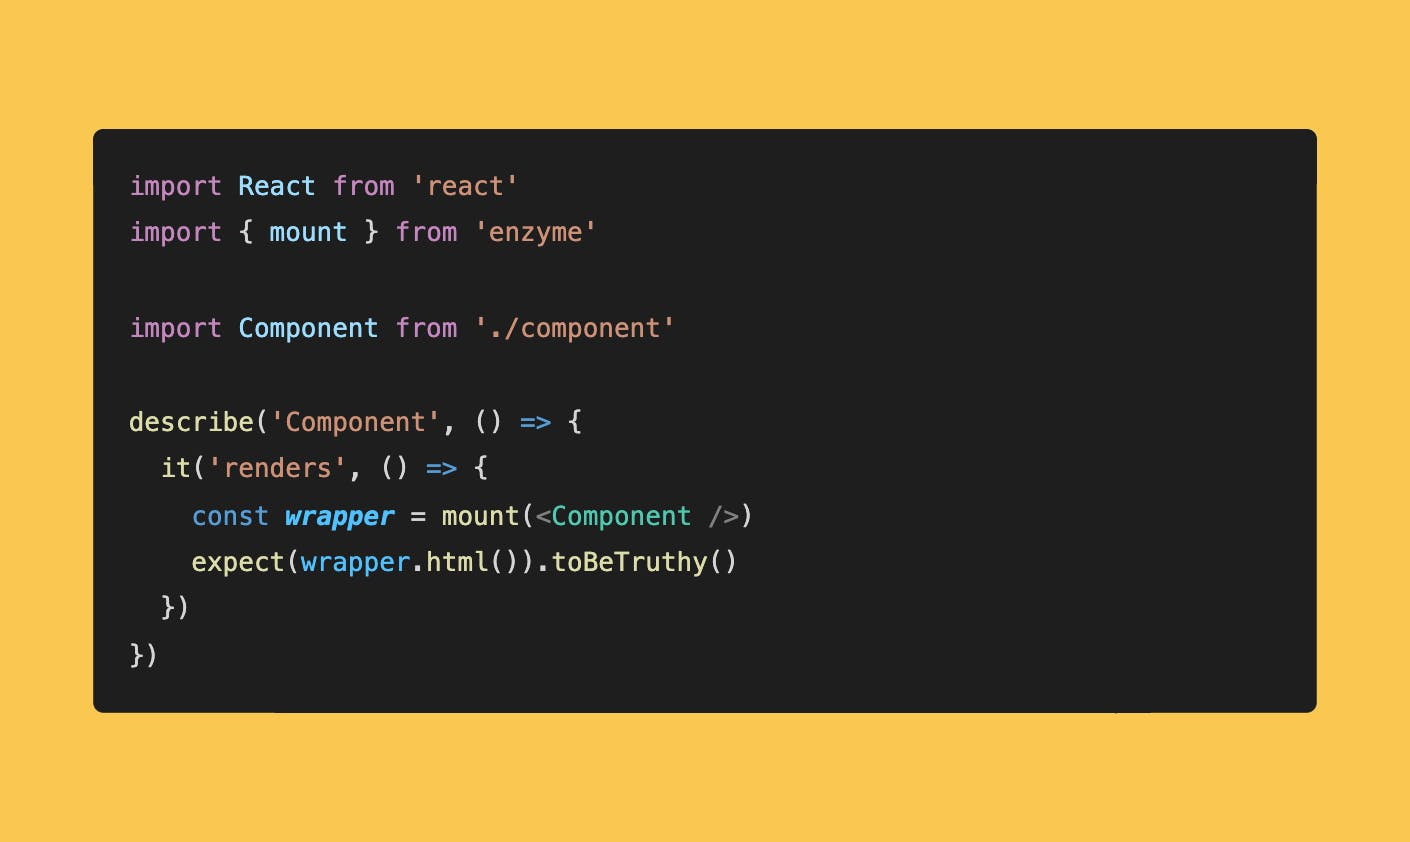 Code Snippet Result